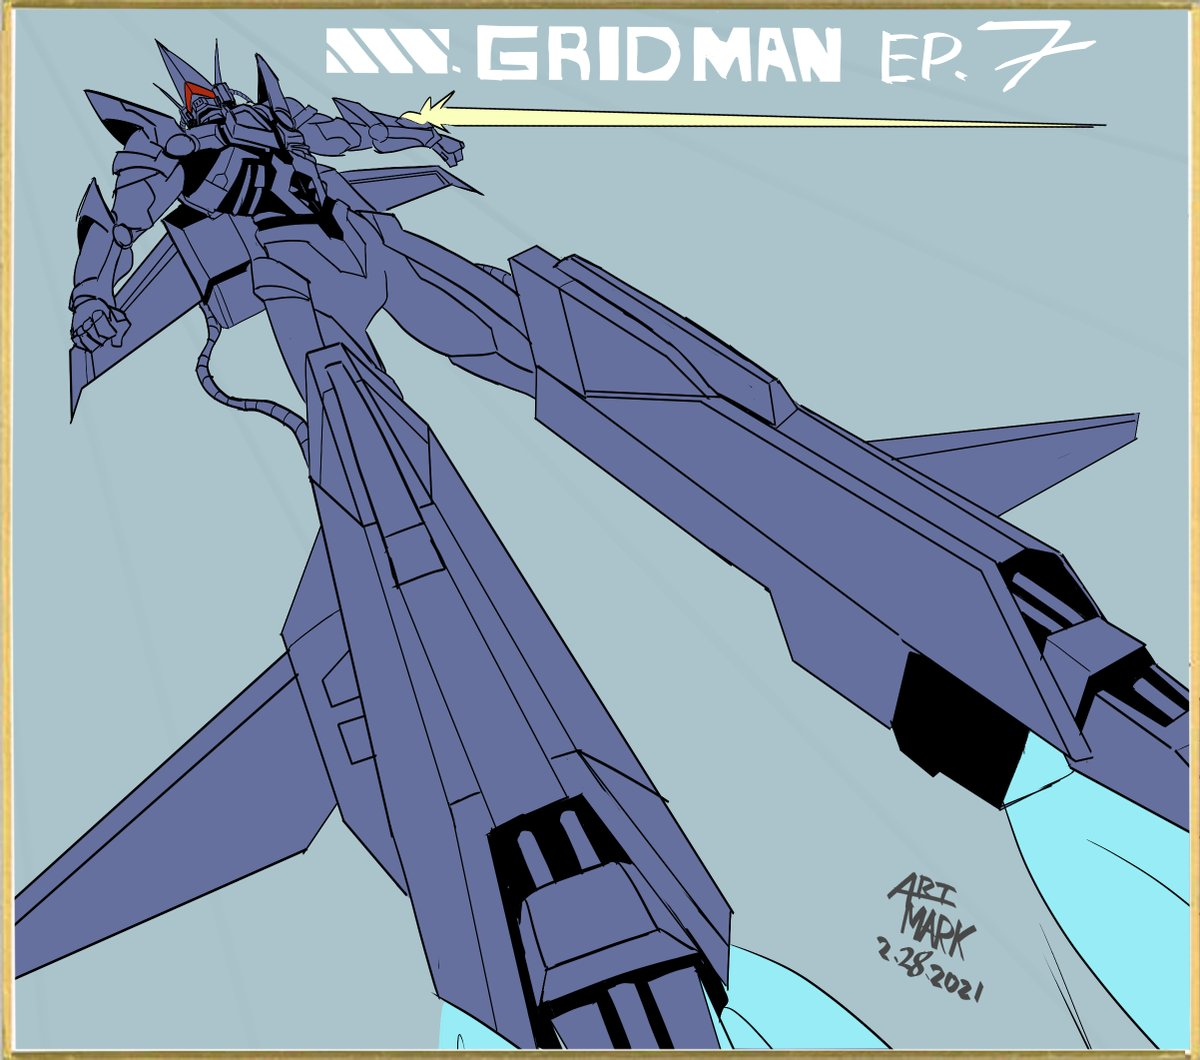 SSSS.GRIDMAN episode 7 broadcasting now on Toonami/ @adultswim  Please check it out! #SSSS_GRIDMAN #Toonami #anime #StudioTrigger #SSSS_DYNAZENON #GRIDMAN #Trigger #SSSSGRIDMAN